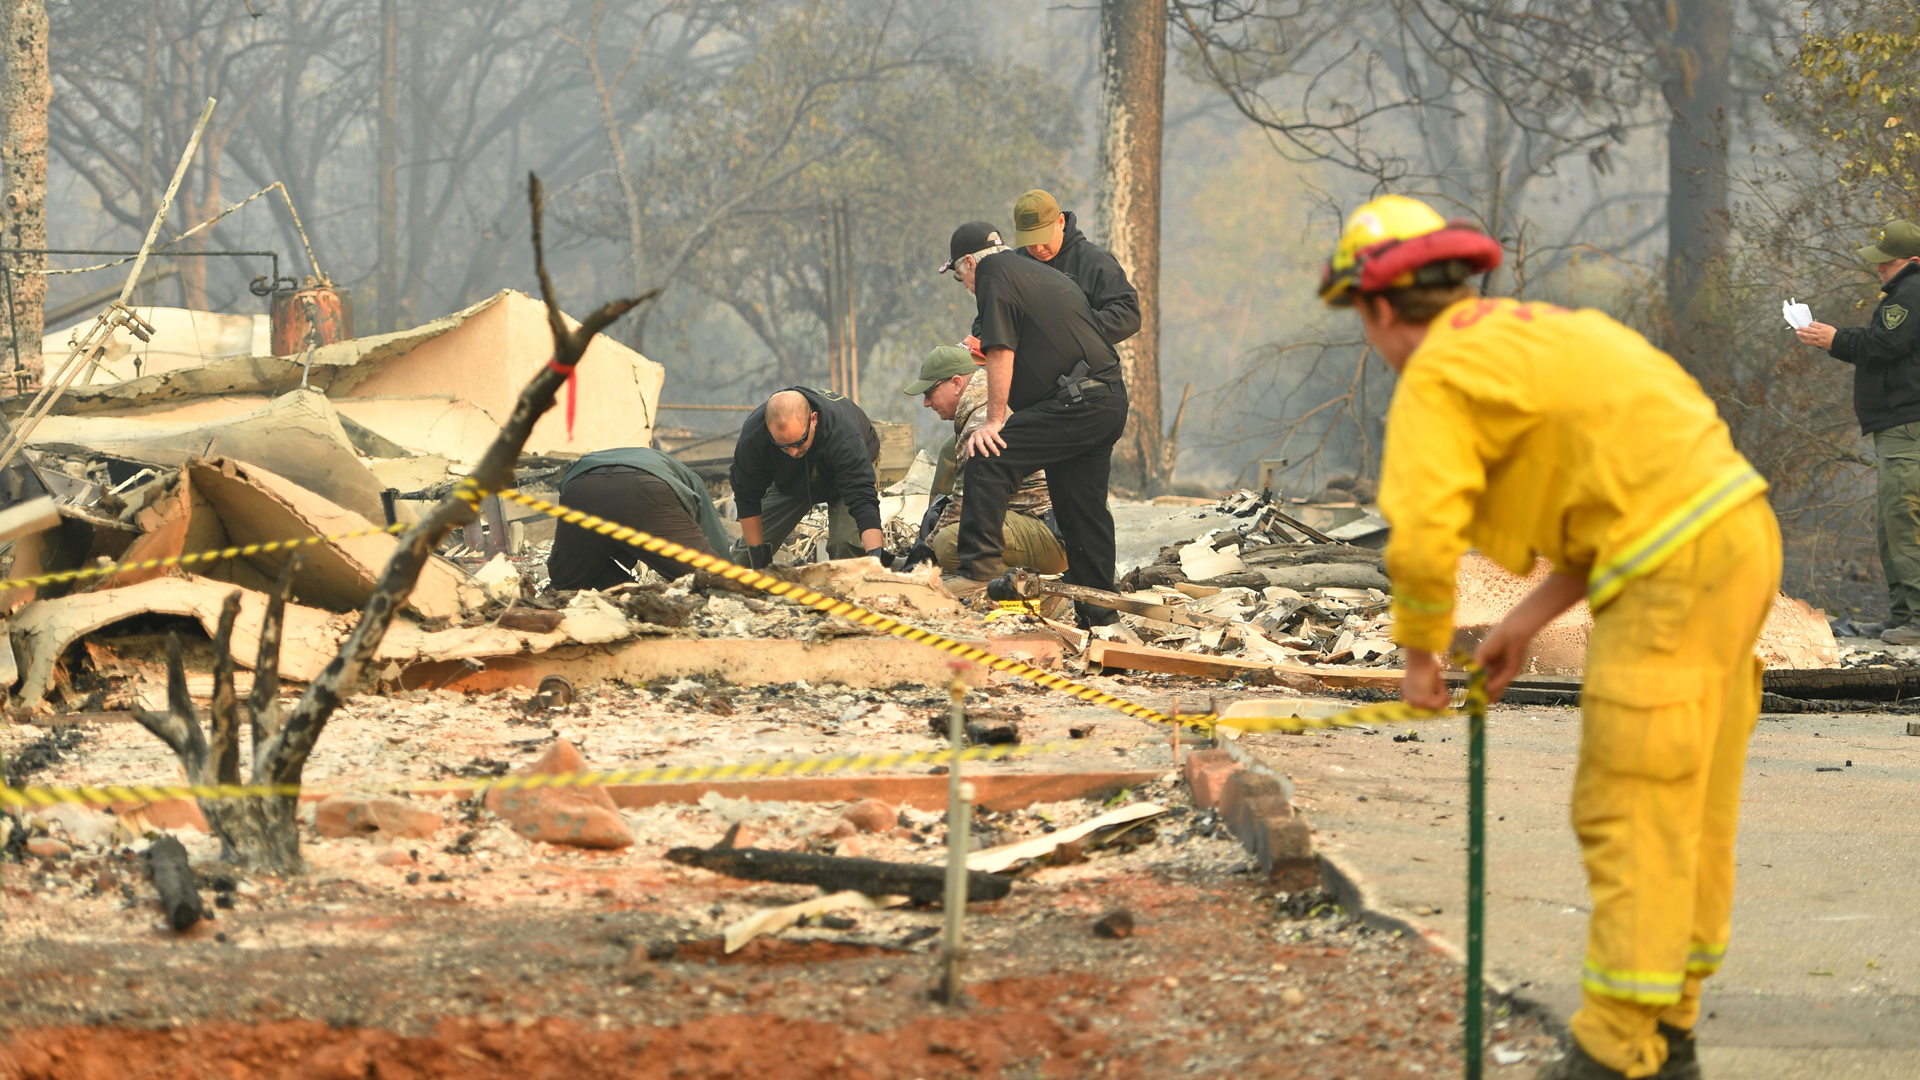 A CalFire firefighter sets up tape as Yuba and Butte County Sheriff officers recover a body at a burned out residence in Paradise on November 10, 2018. (Credit: JOSH EDELSON/AFP/Getty Images)